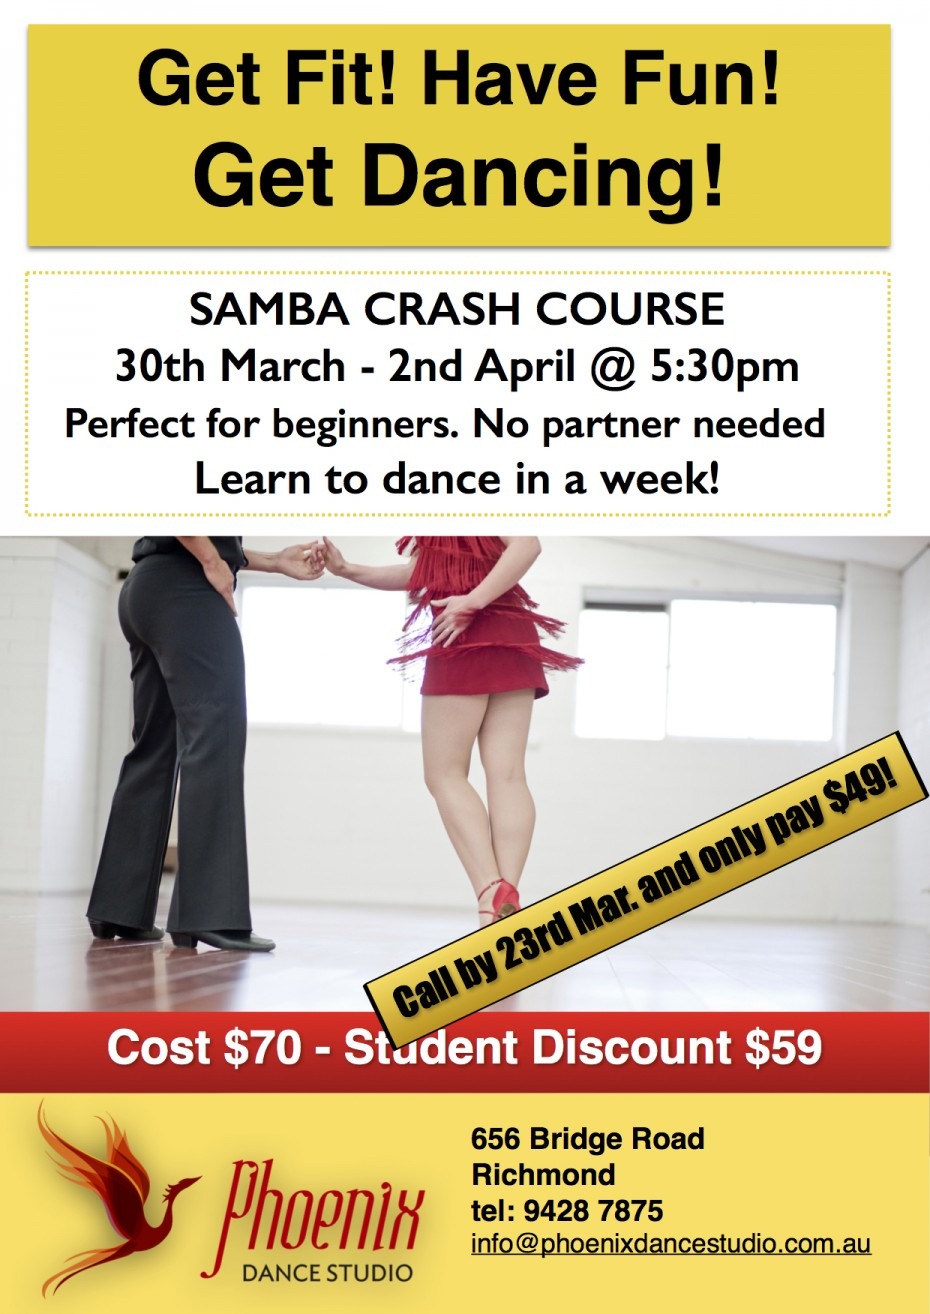 Samba Crash Course